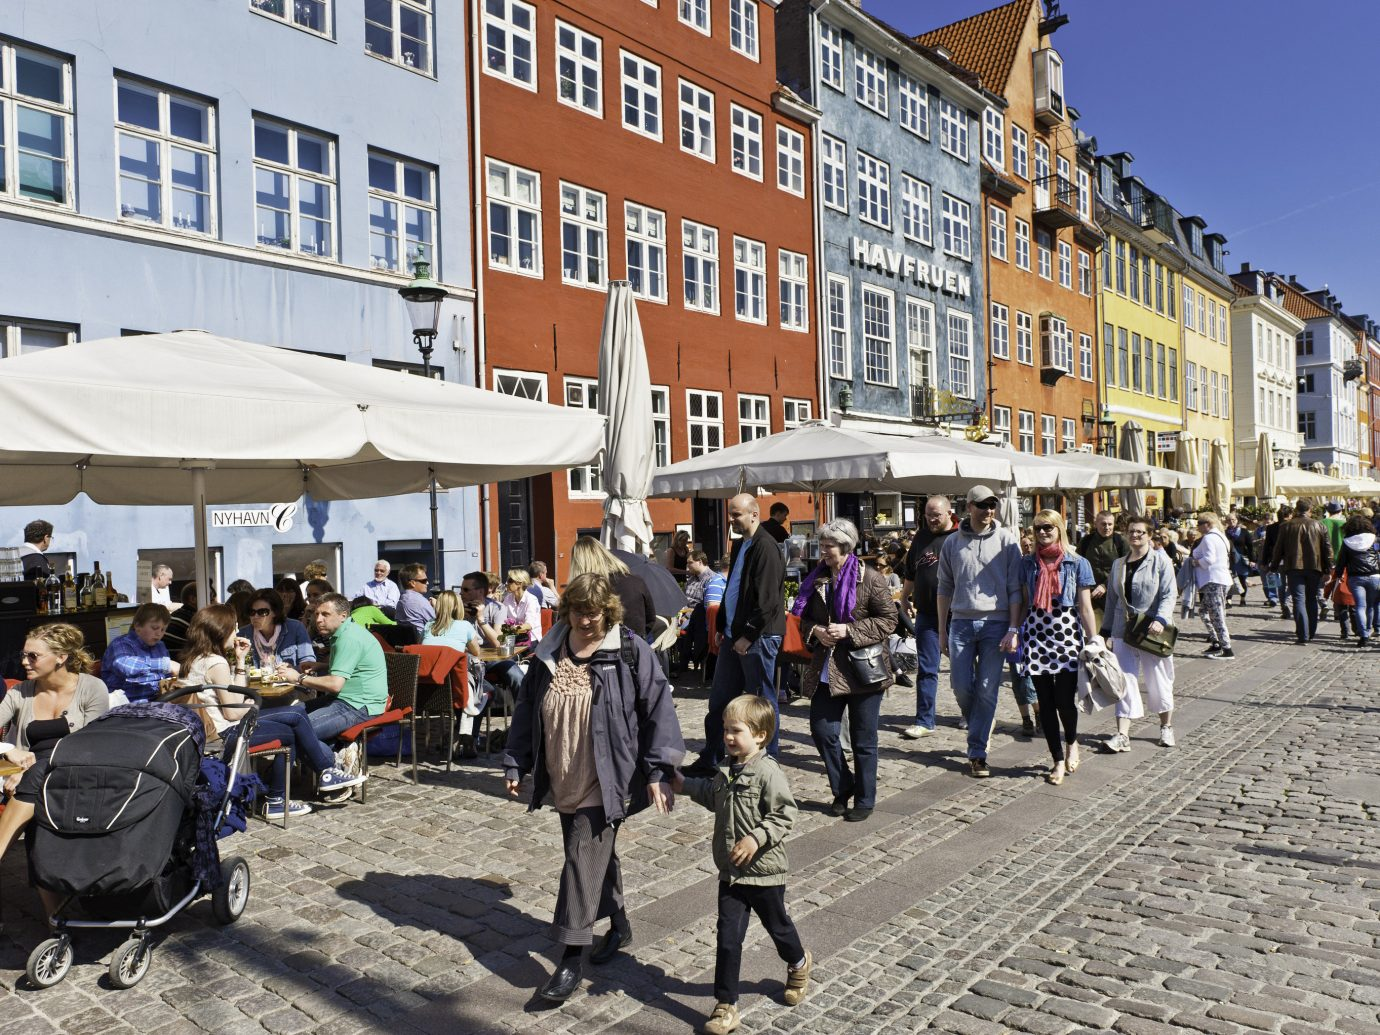 Copenhagen Denmark Trip Ideas Town City public space urban area neighbourhood marketplace street pedestrian market town square Downtown tourism crowd plaza car recreation building